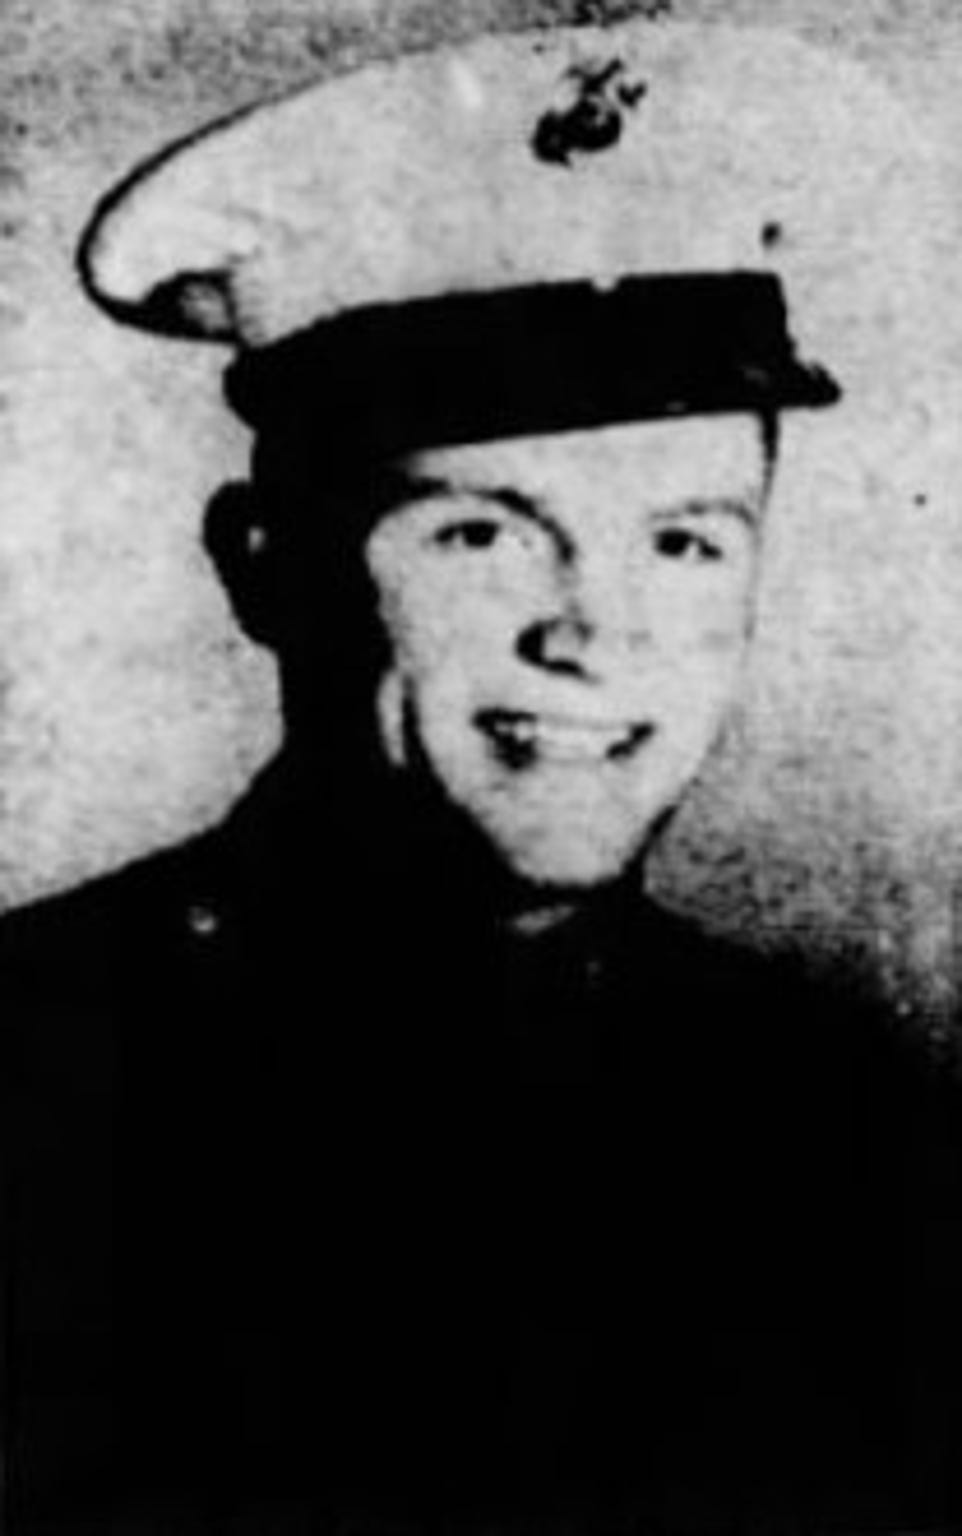 Oliver B. Crain was killed at age 23 in Korea. He was from Goodells.